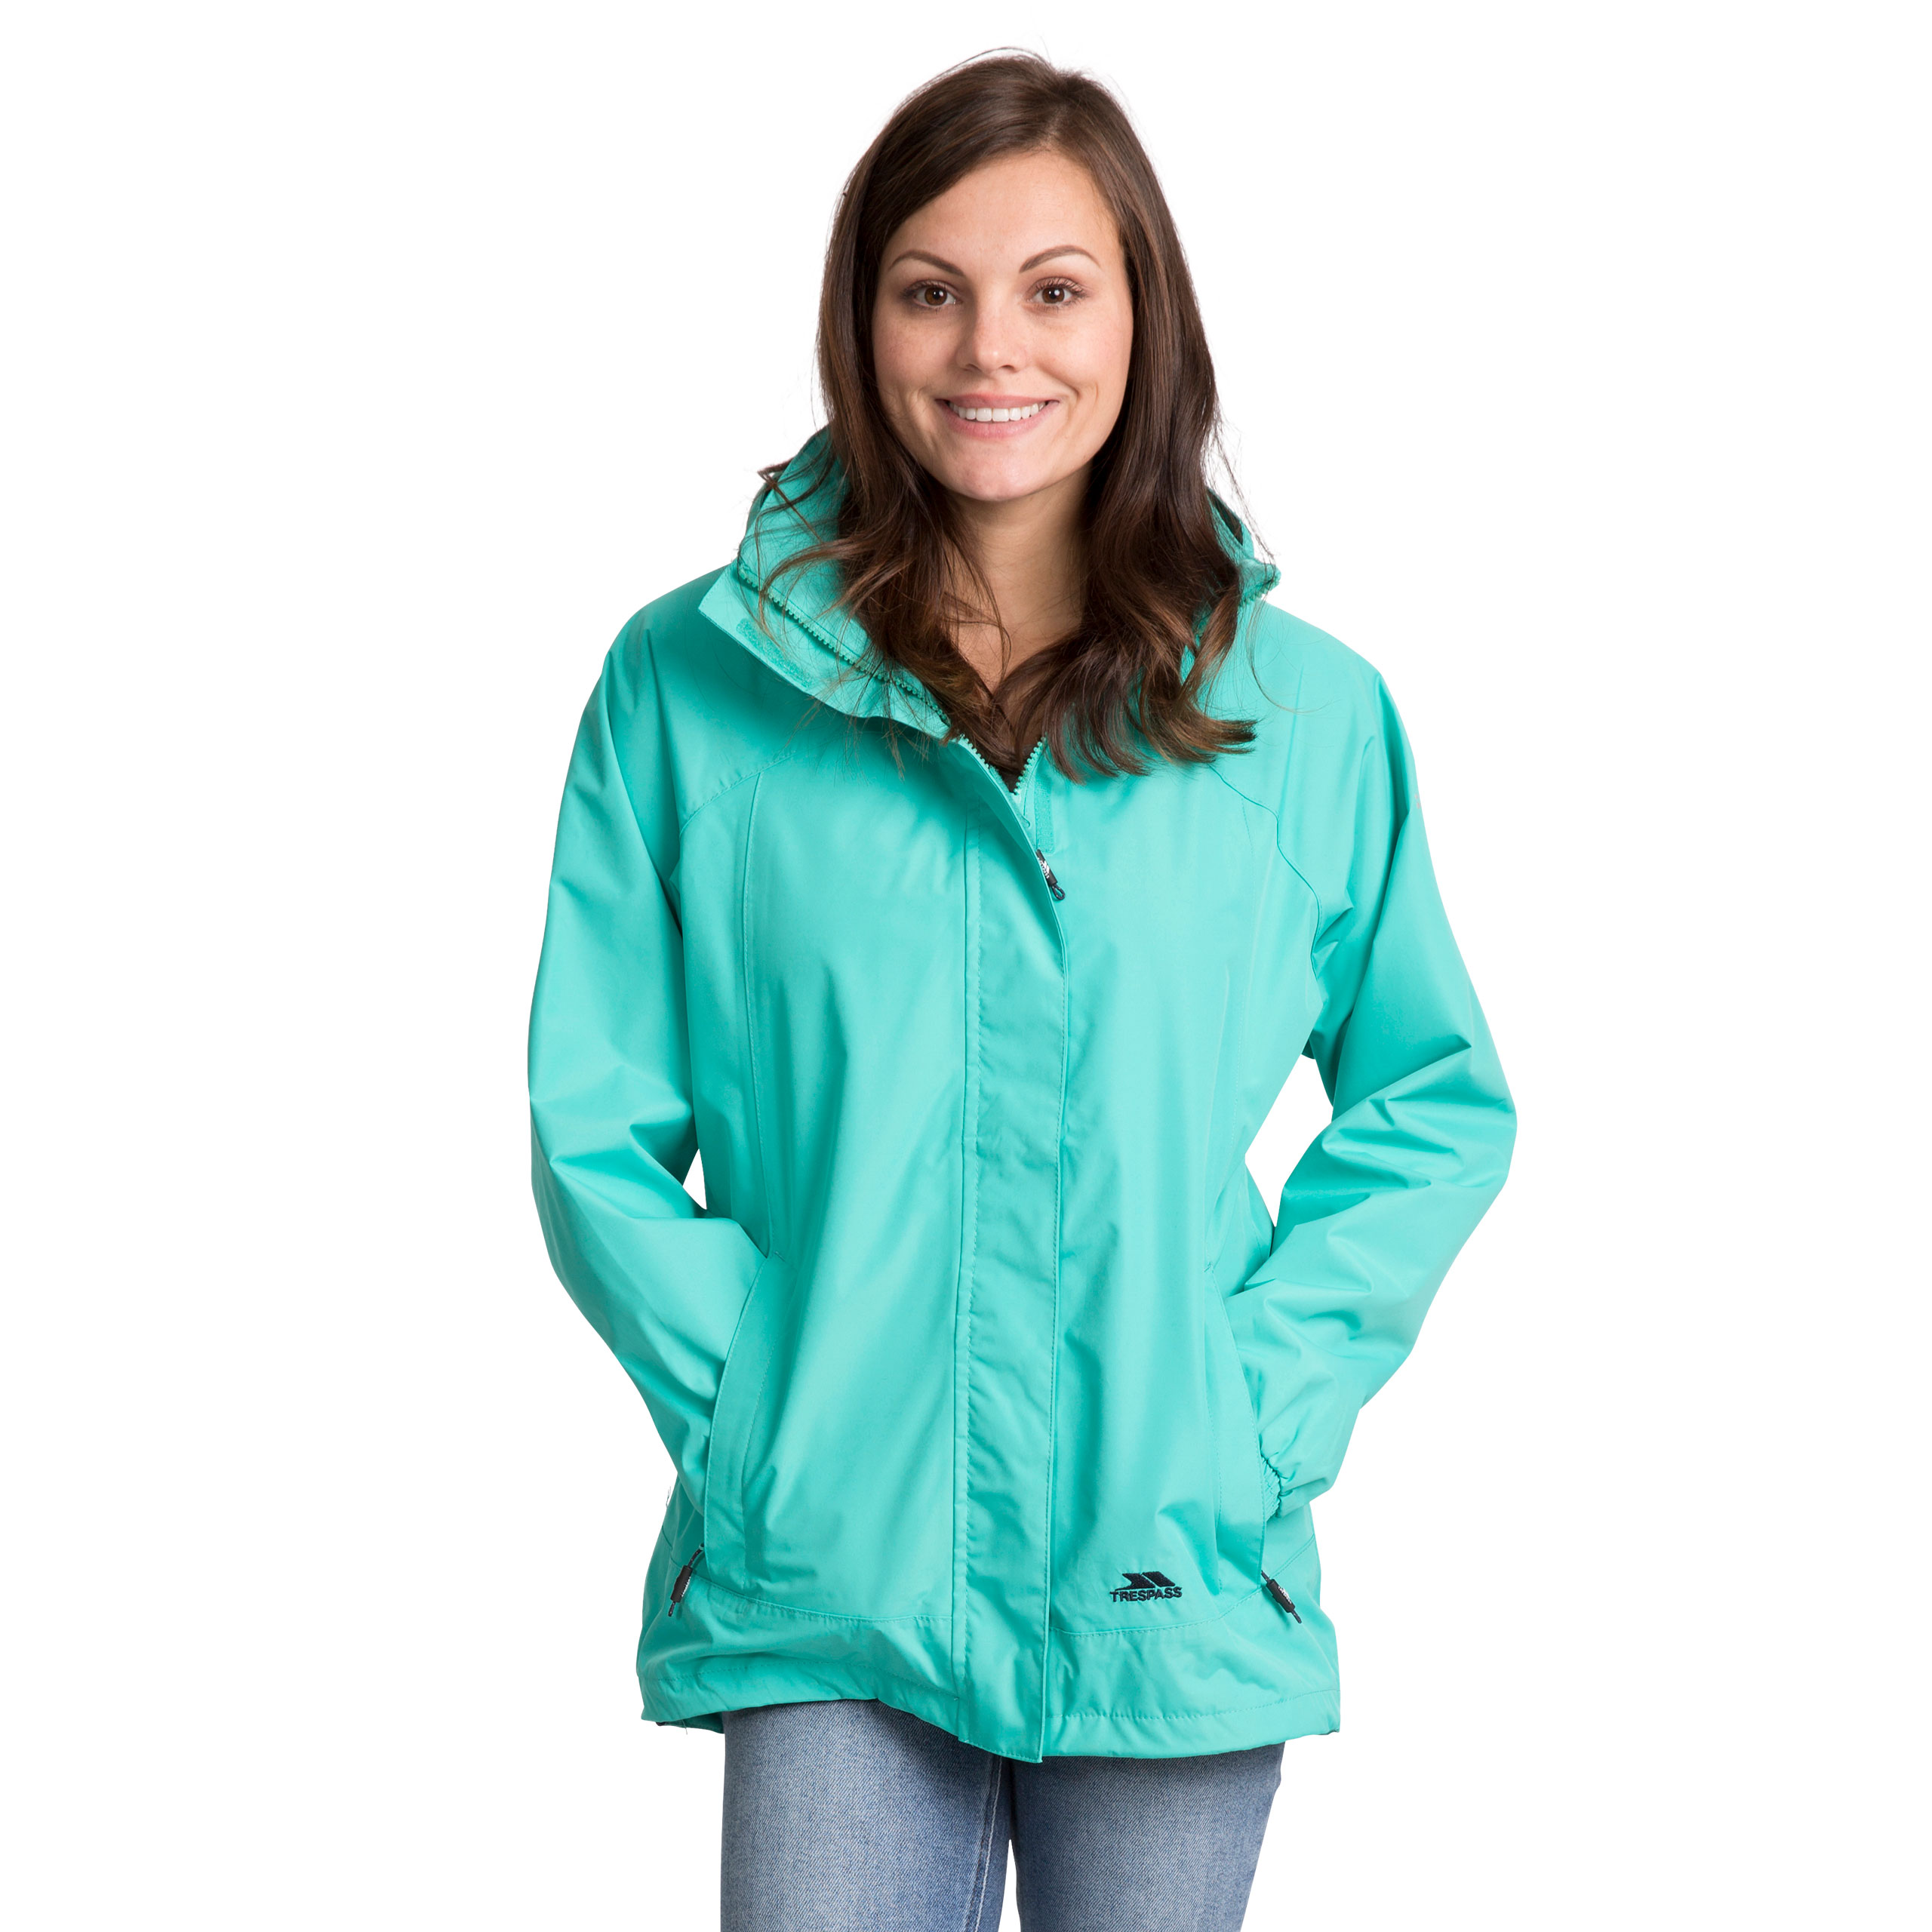 Trespass-Womens-Waterproof-Hooded-Jacket-Outdoor-Cycling-Raincoat thumbnail 20